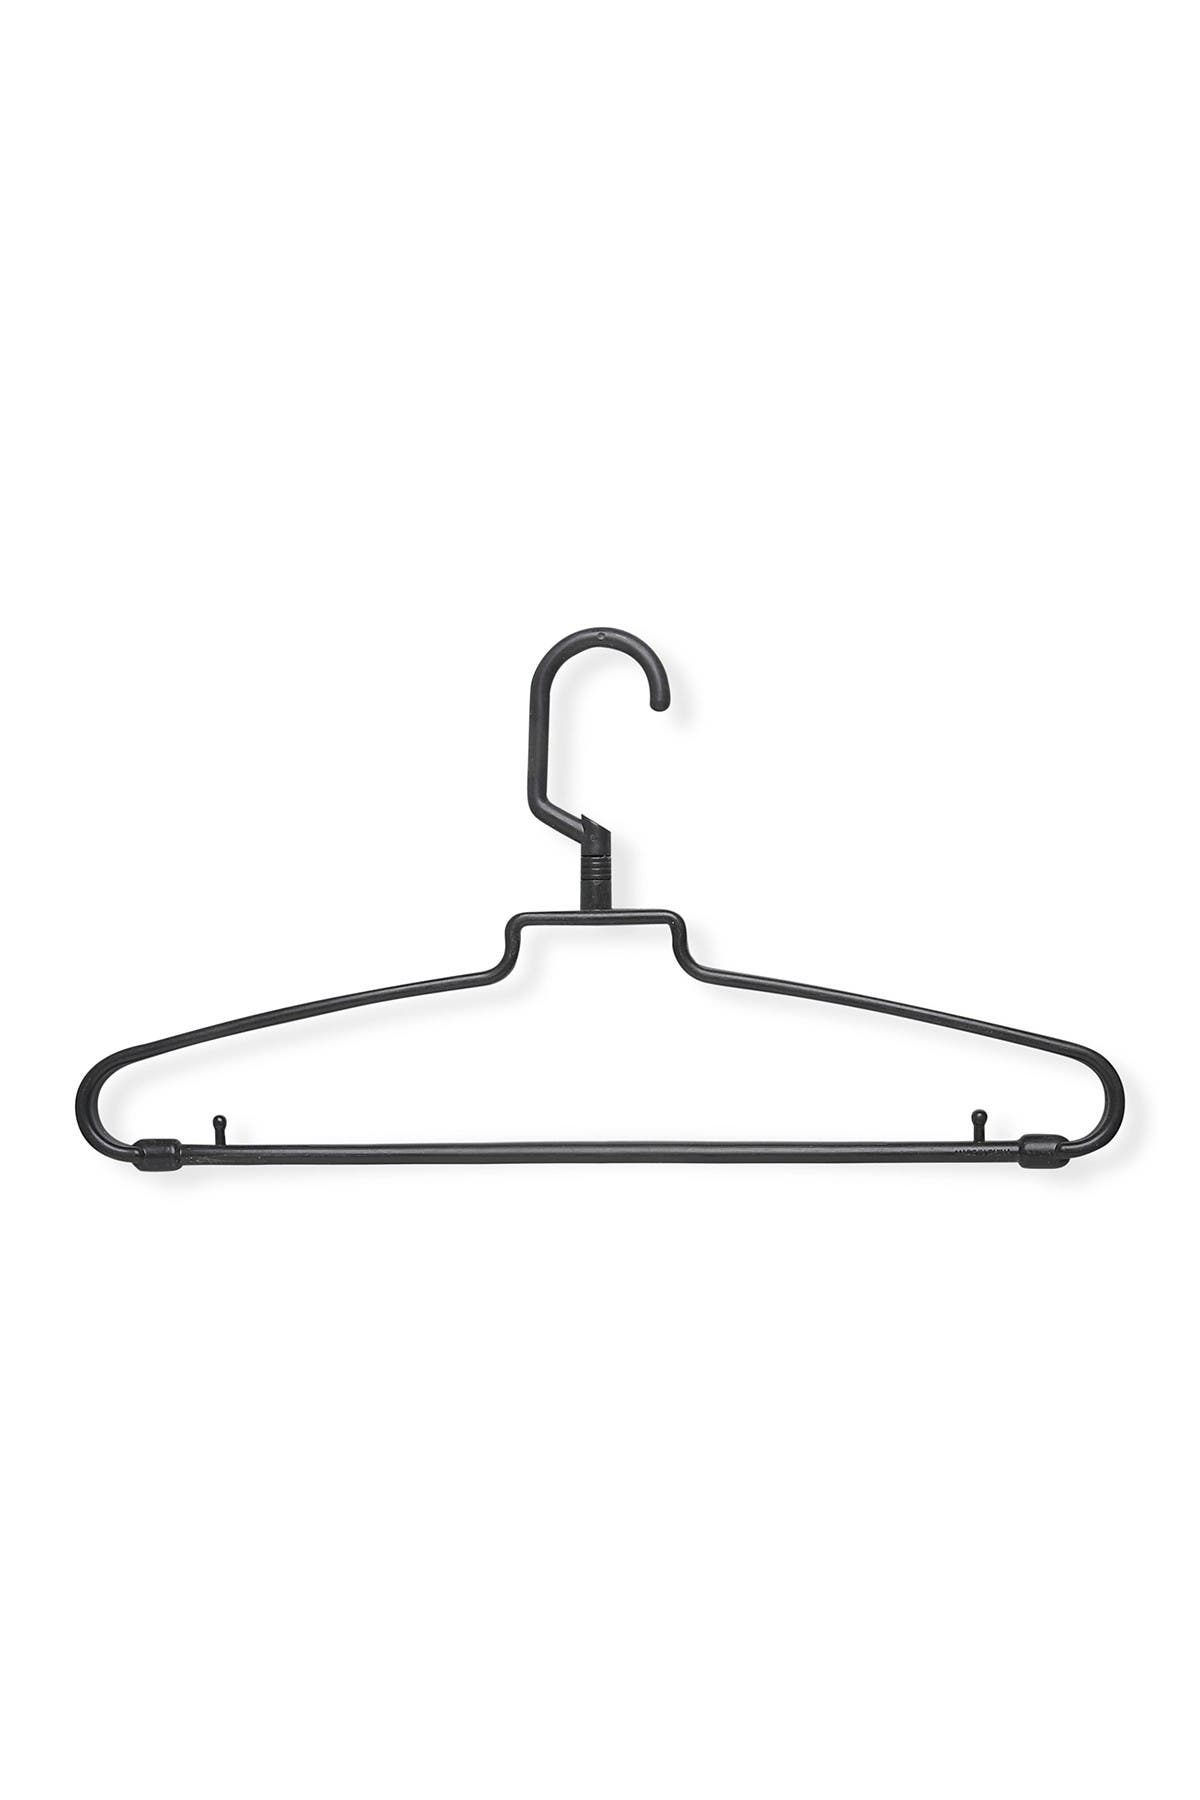 Image of Honey-Can-Do 72-Pack Hotel Style Brown Hangers